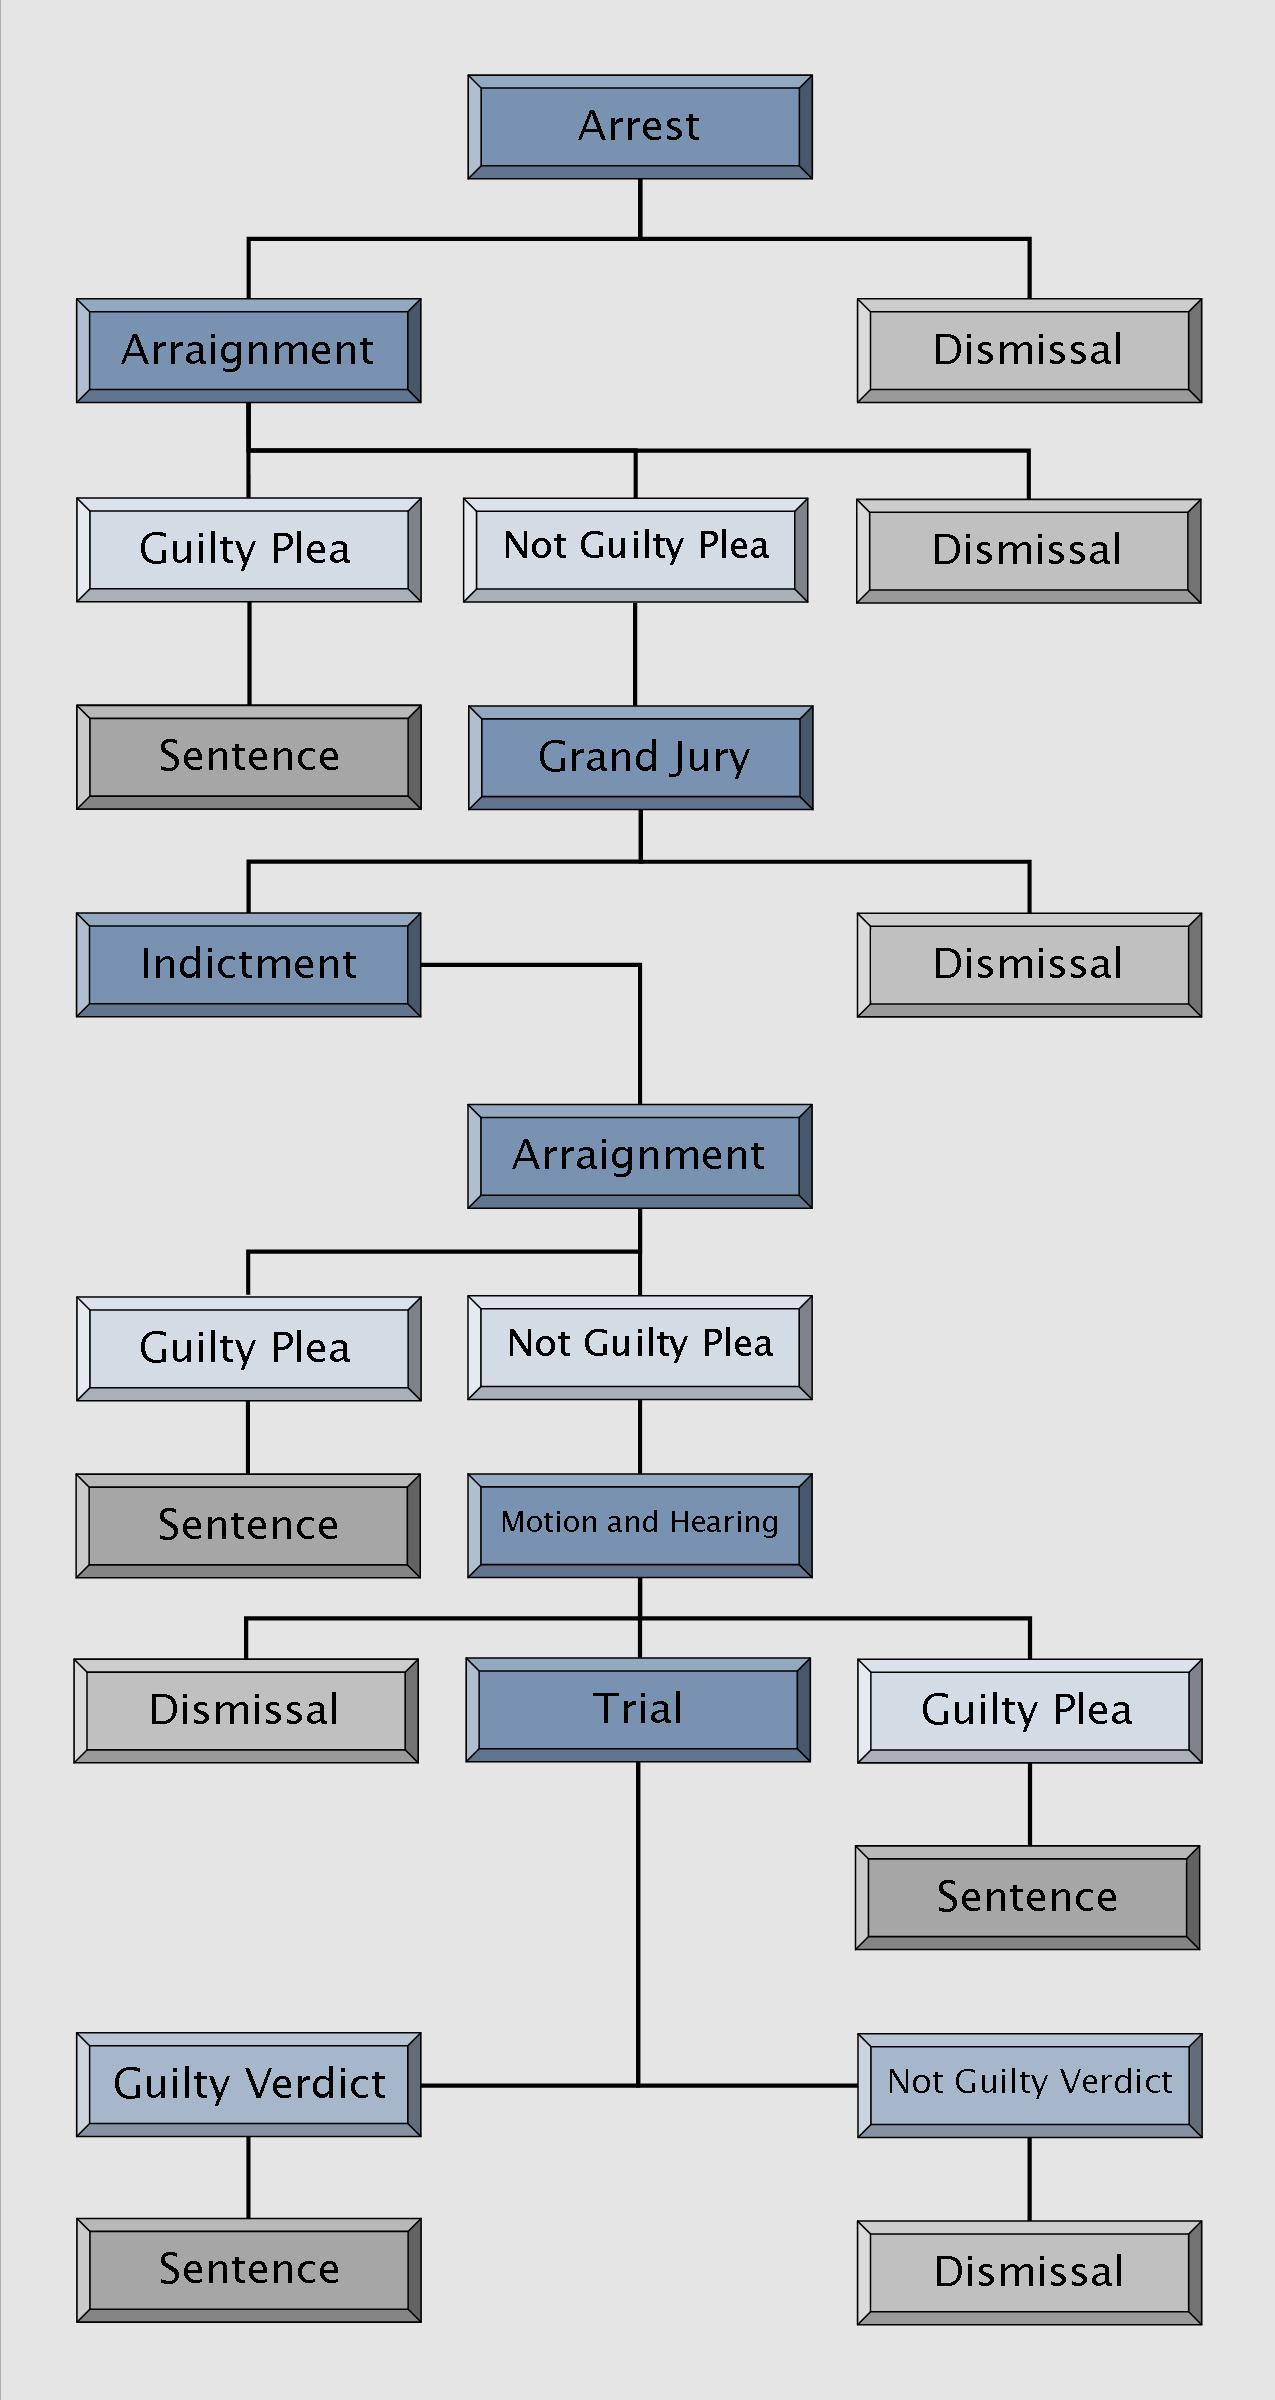 criminal justice process in malaysia The appeals process stage of a criminal case  the appeals process stage of a criminal case stages of the criminal justice system  although the appeals process .